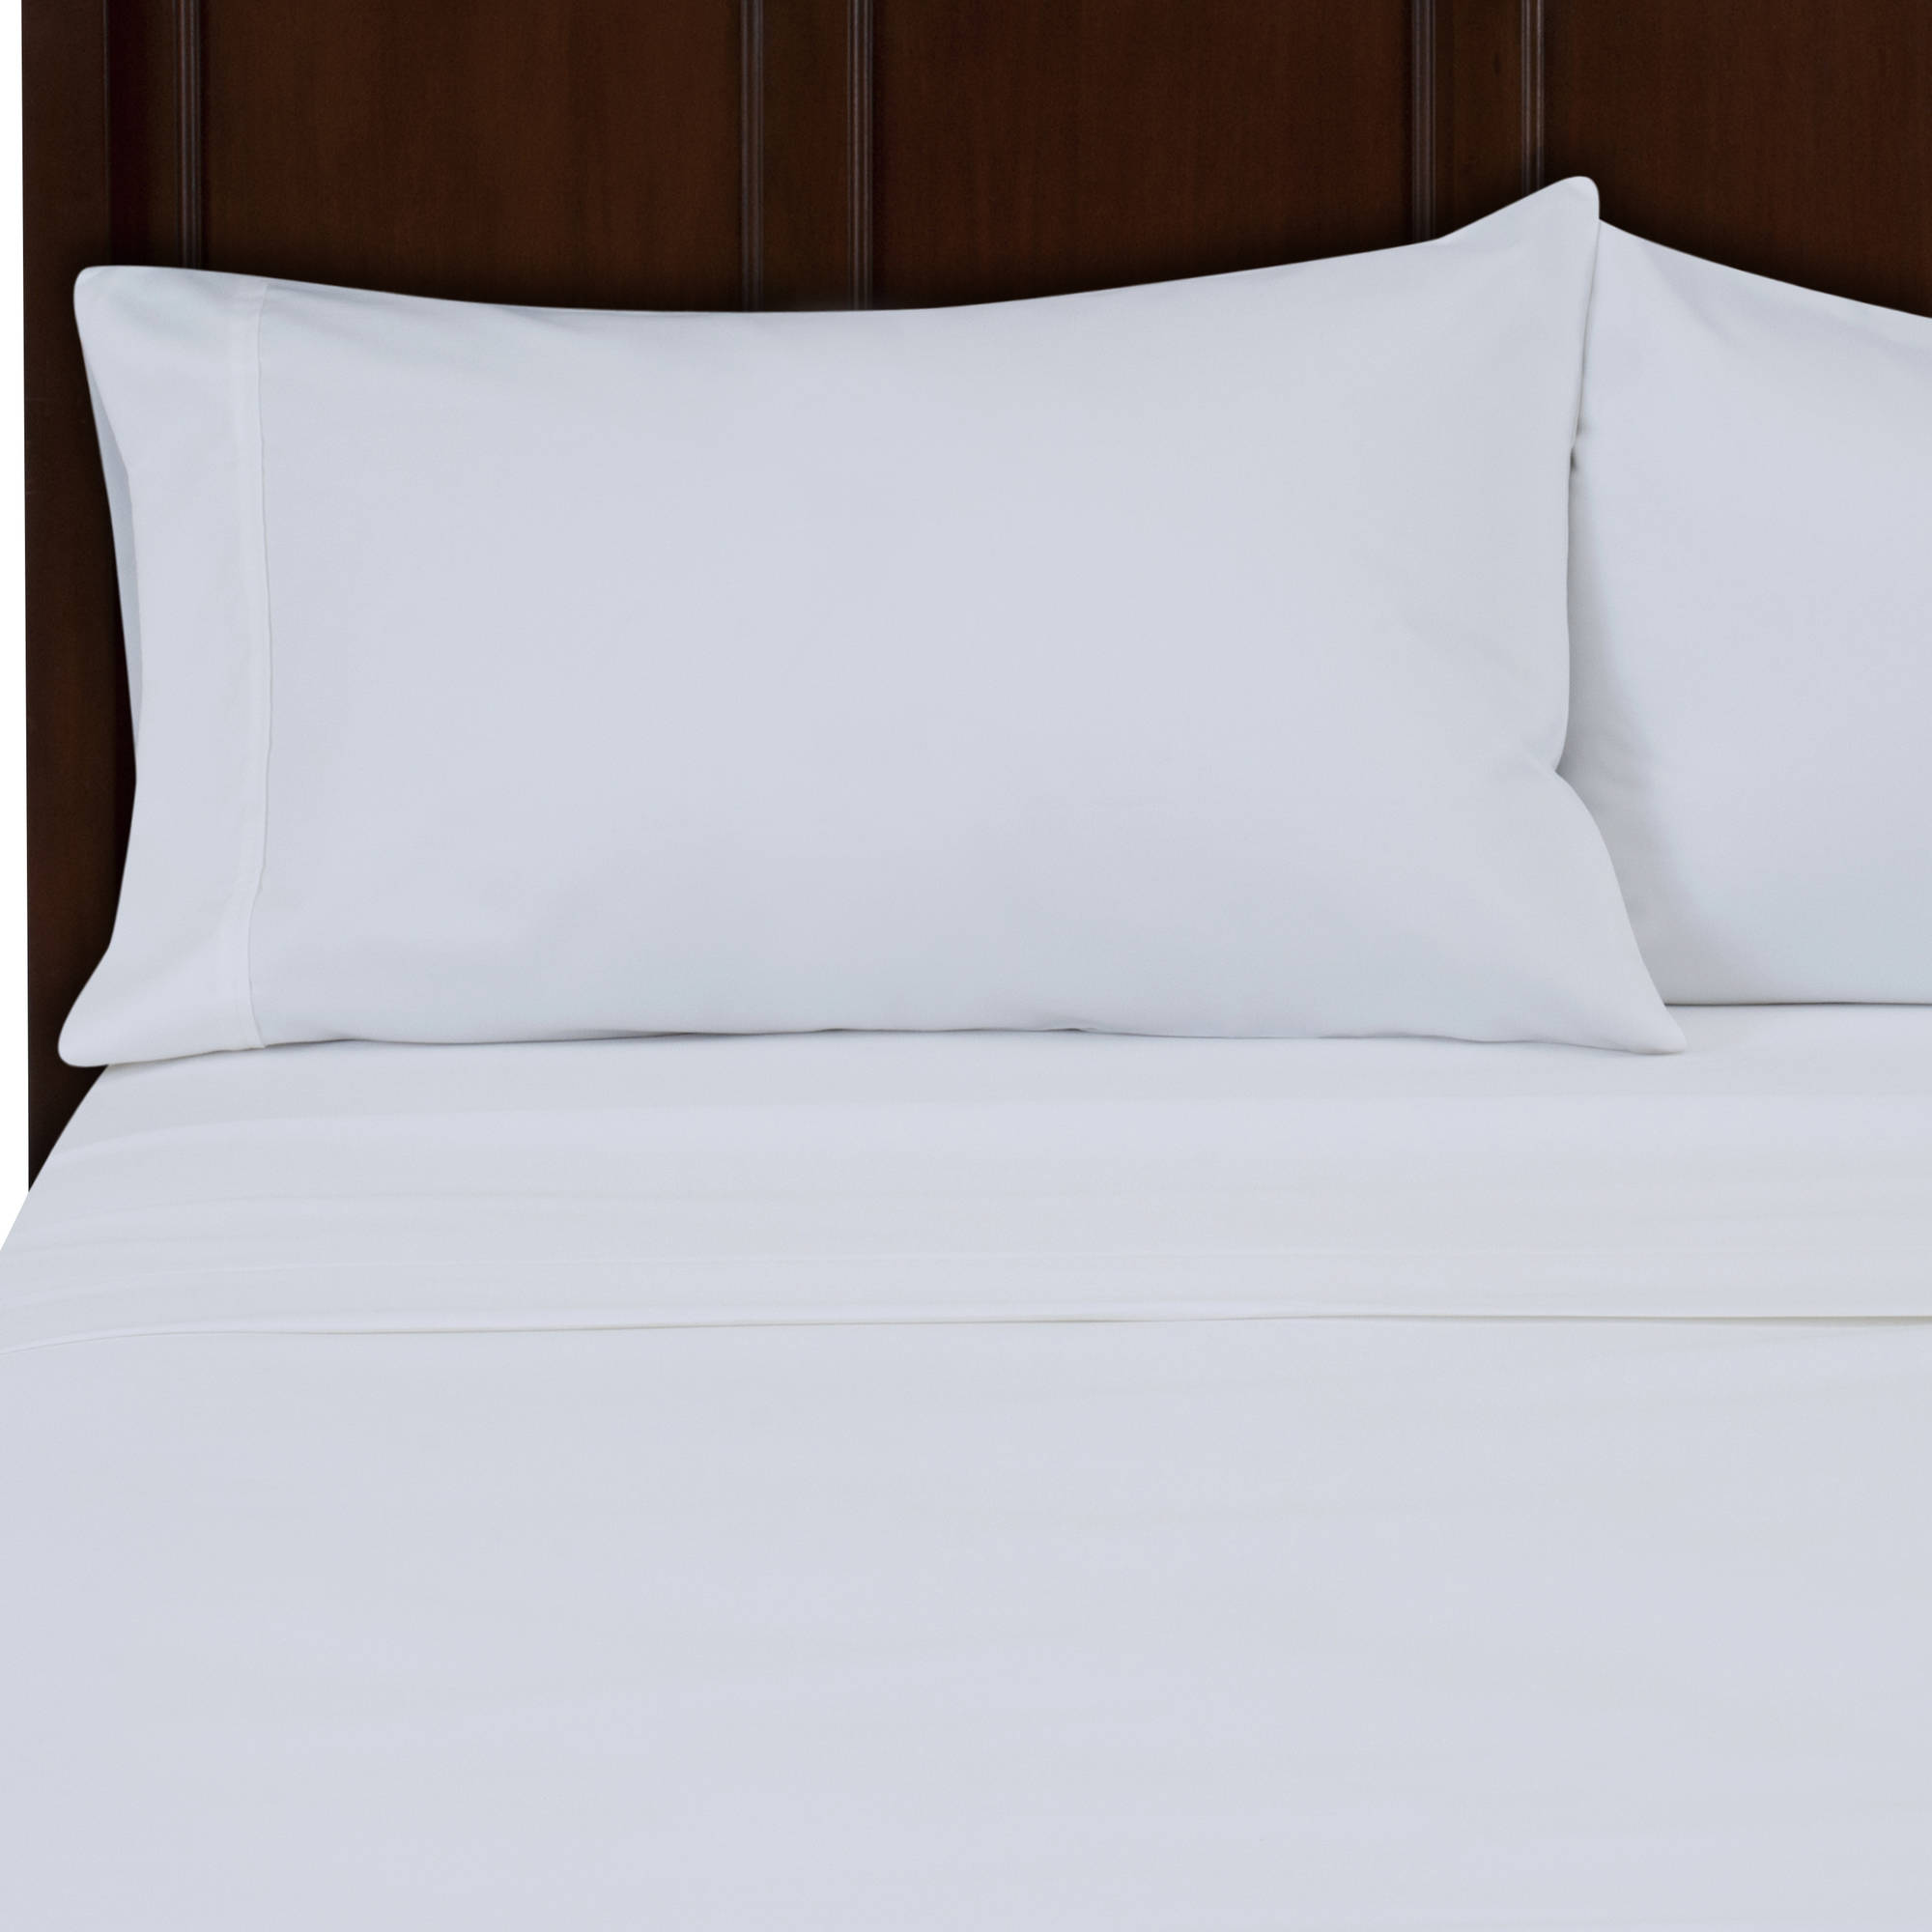 Hotel Style 1100 Thread Count Sheet Set Walmart Com